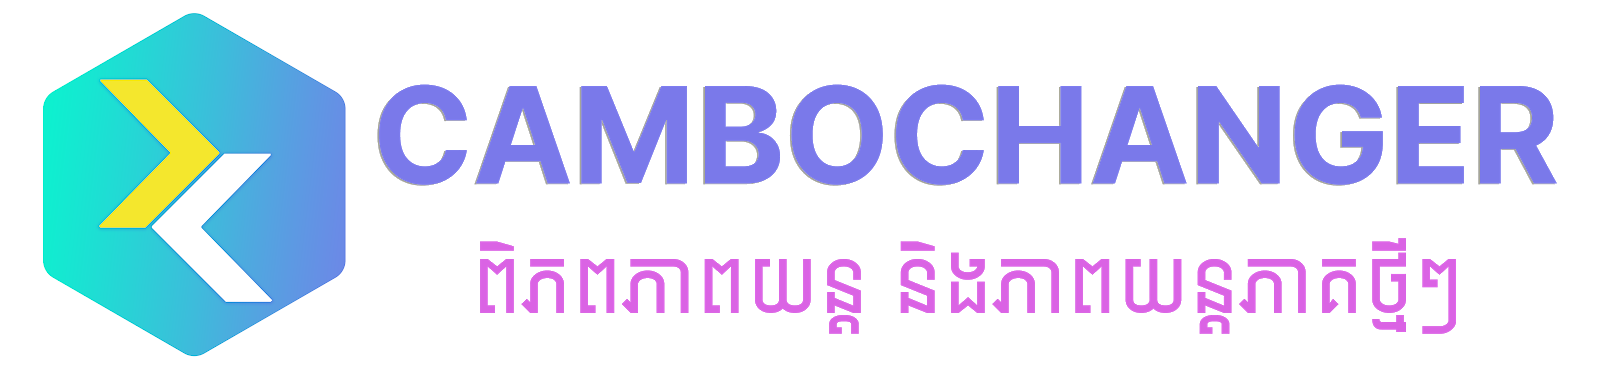 Mobile CamboChanger Movies